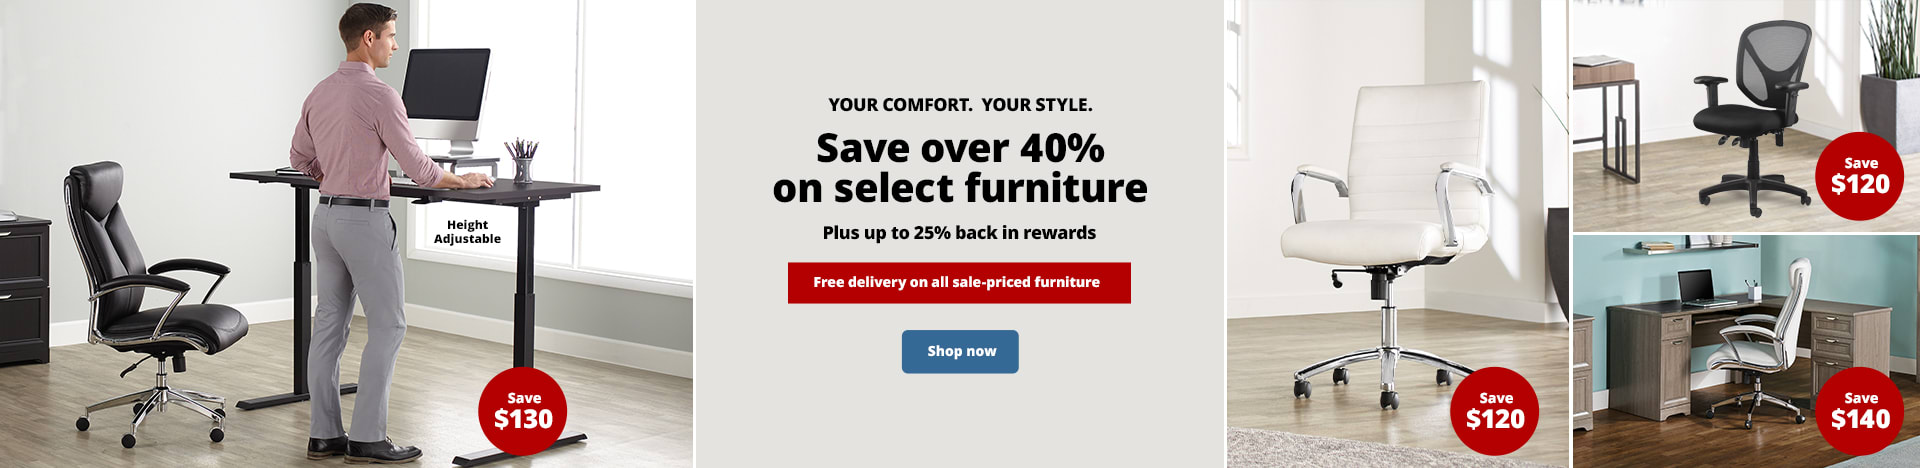 Save over 40% on select furniture. Plus up to 25% back in rewards. Free delivery on all sale-priced furniture